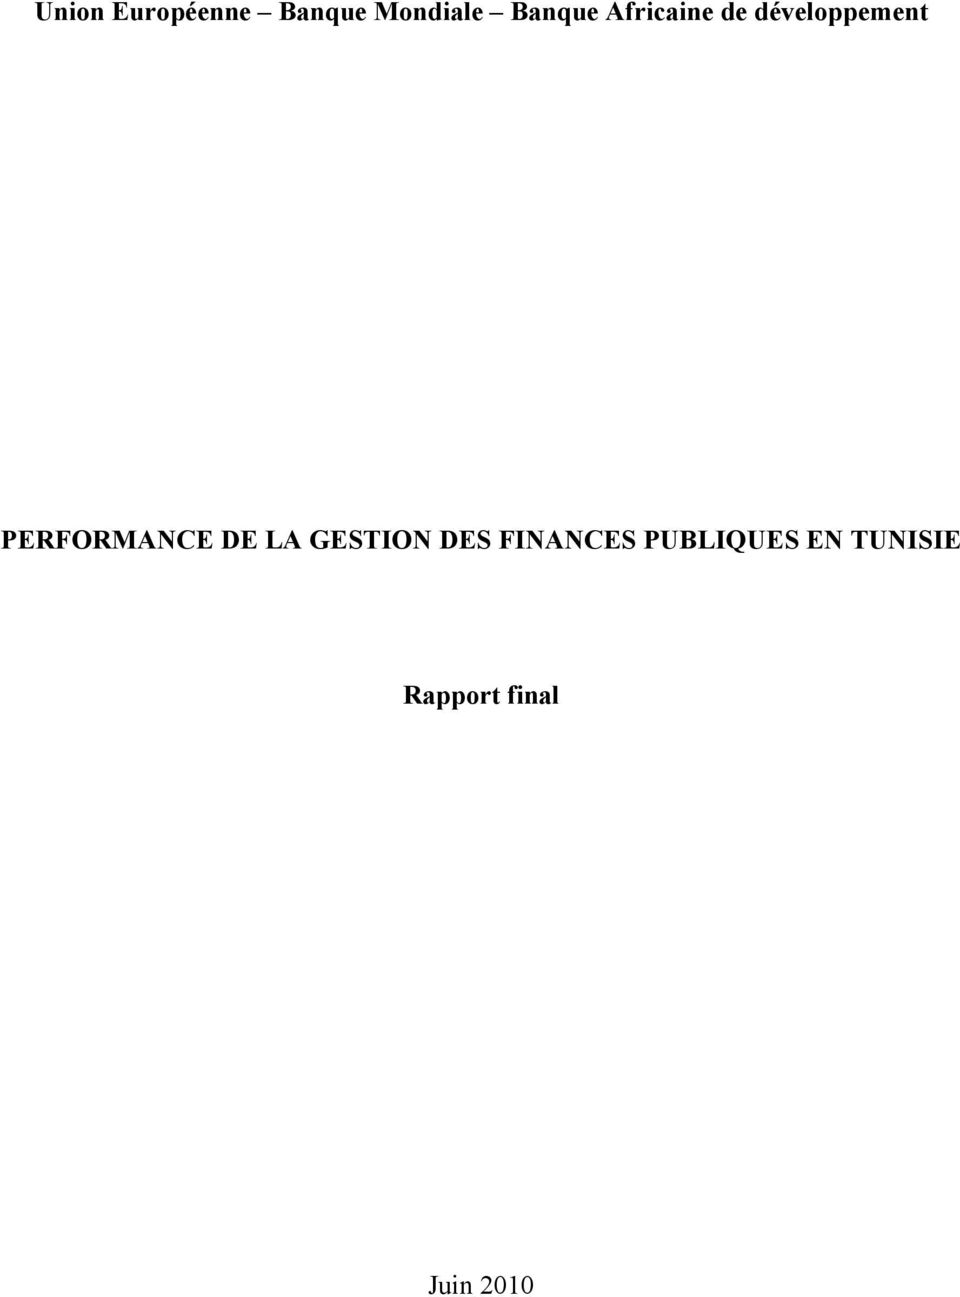 PERFORMANCE DE LA GESTION DES